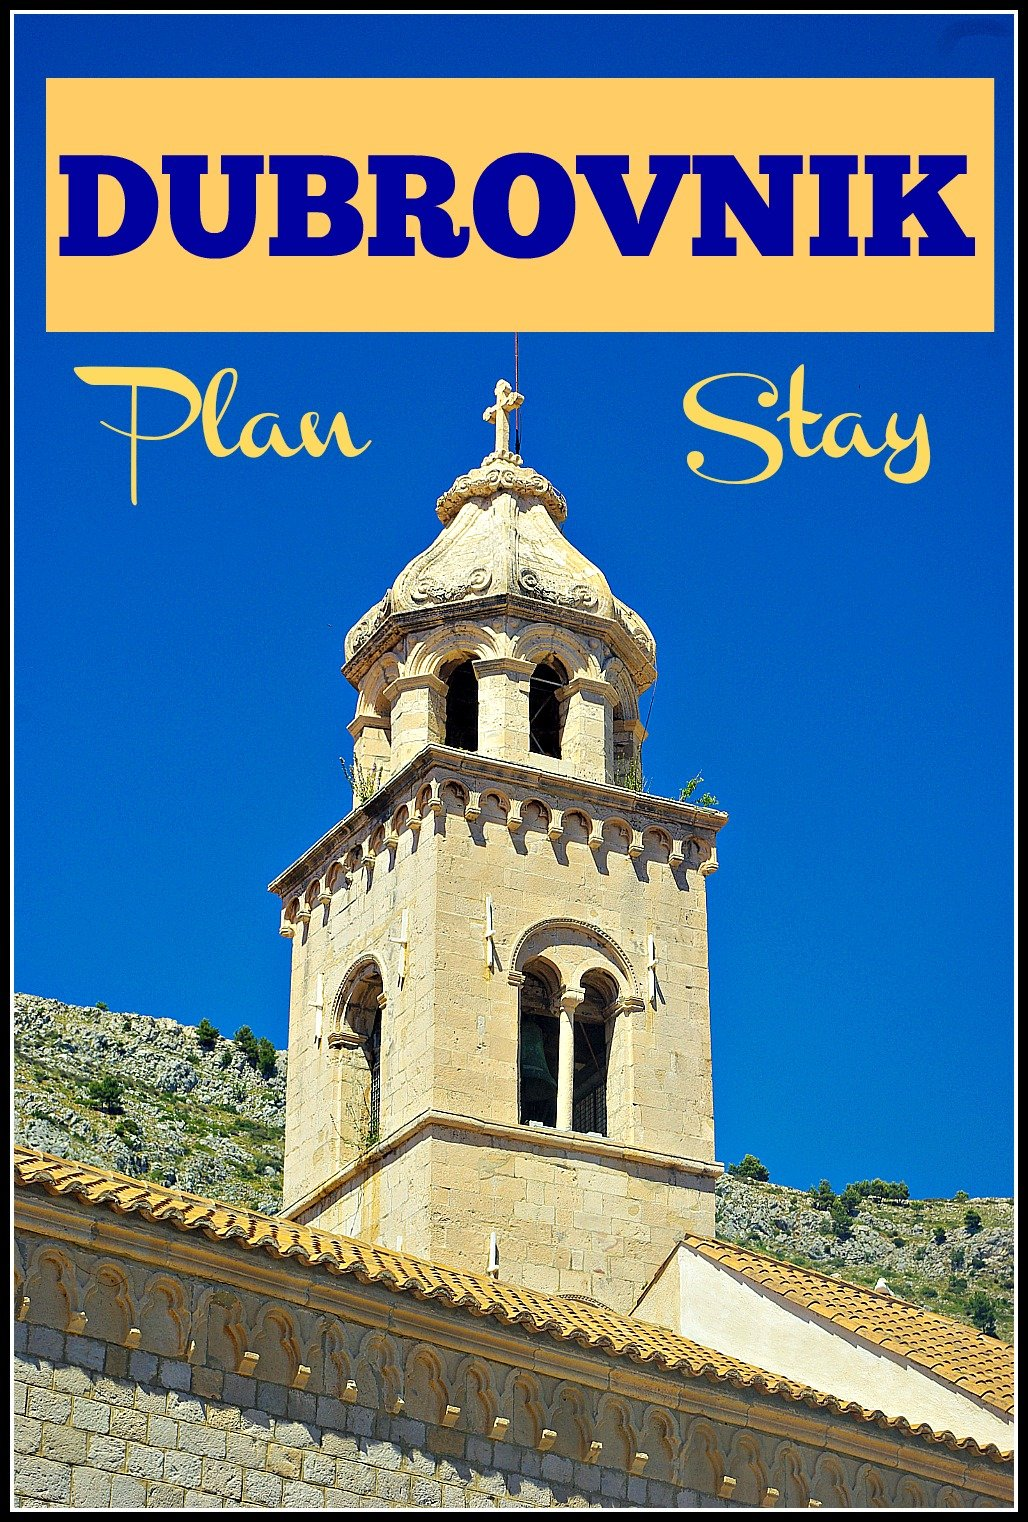 Play your Stay in Dubrovnik with the tips in this post